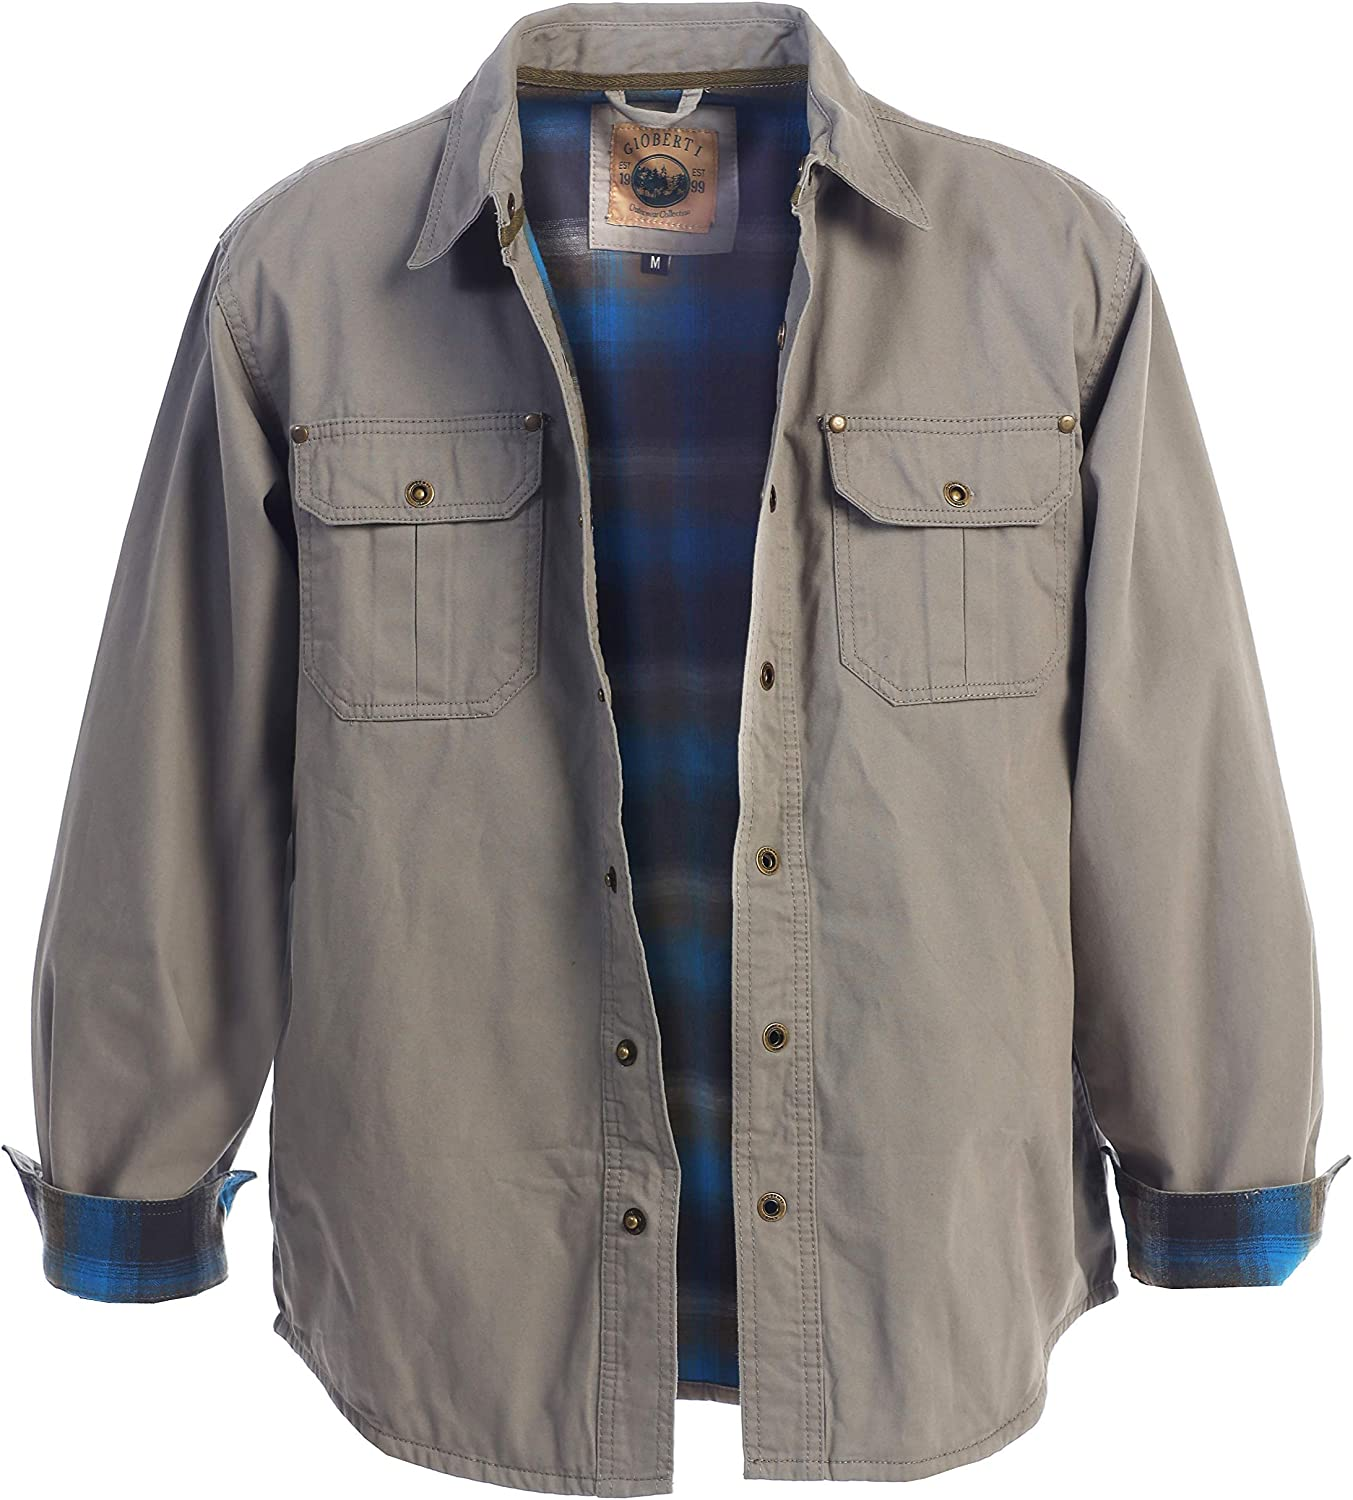 Gioberti Men's Brushed and Soft Twill Shirt Jacket with Flannel Lining